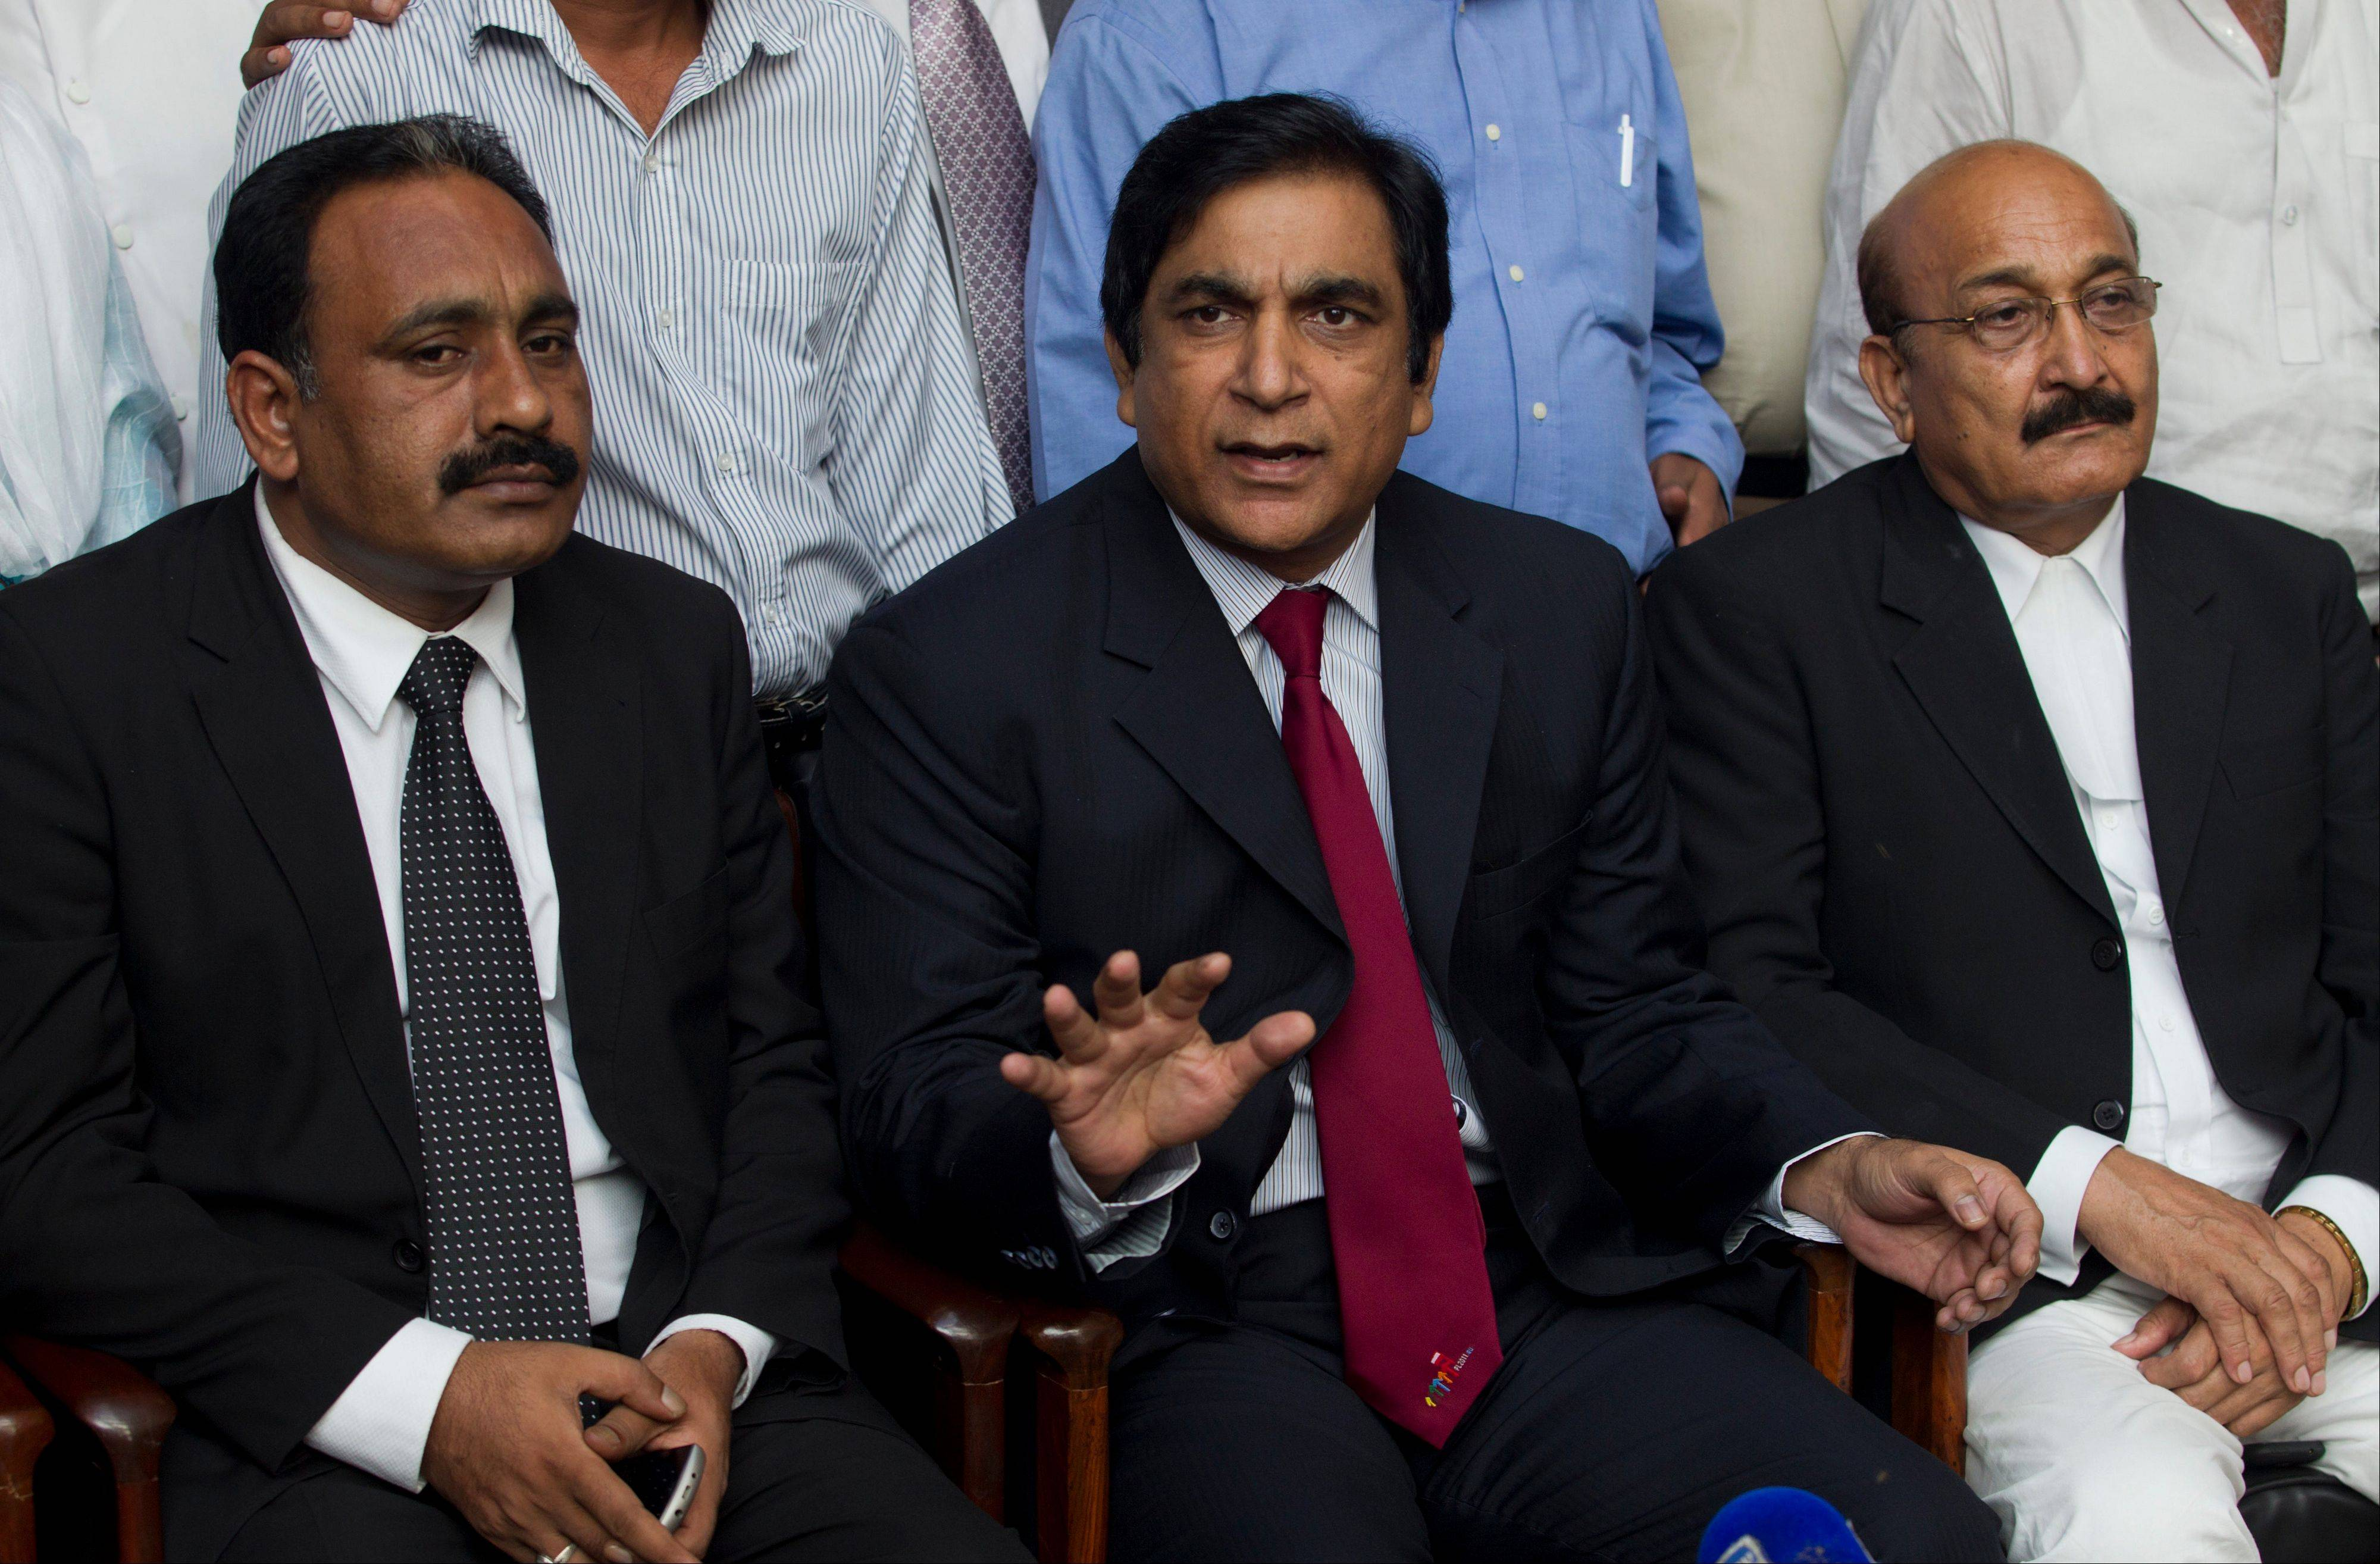 Paul Bhatti, center, an advisor to the prime minister of Pakistan on minorities affairs, flanked by lawyers of a Pakistani girl accused of blasphemy, addresses a news conference Friday in Islamabad, Pakistan.